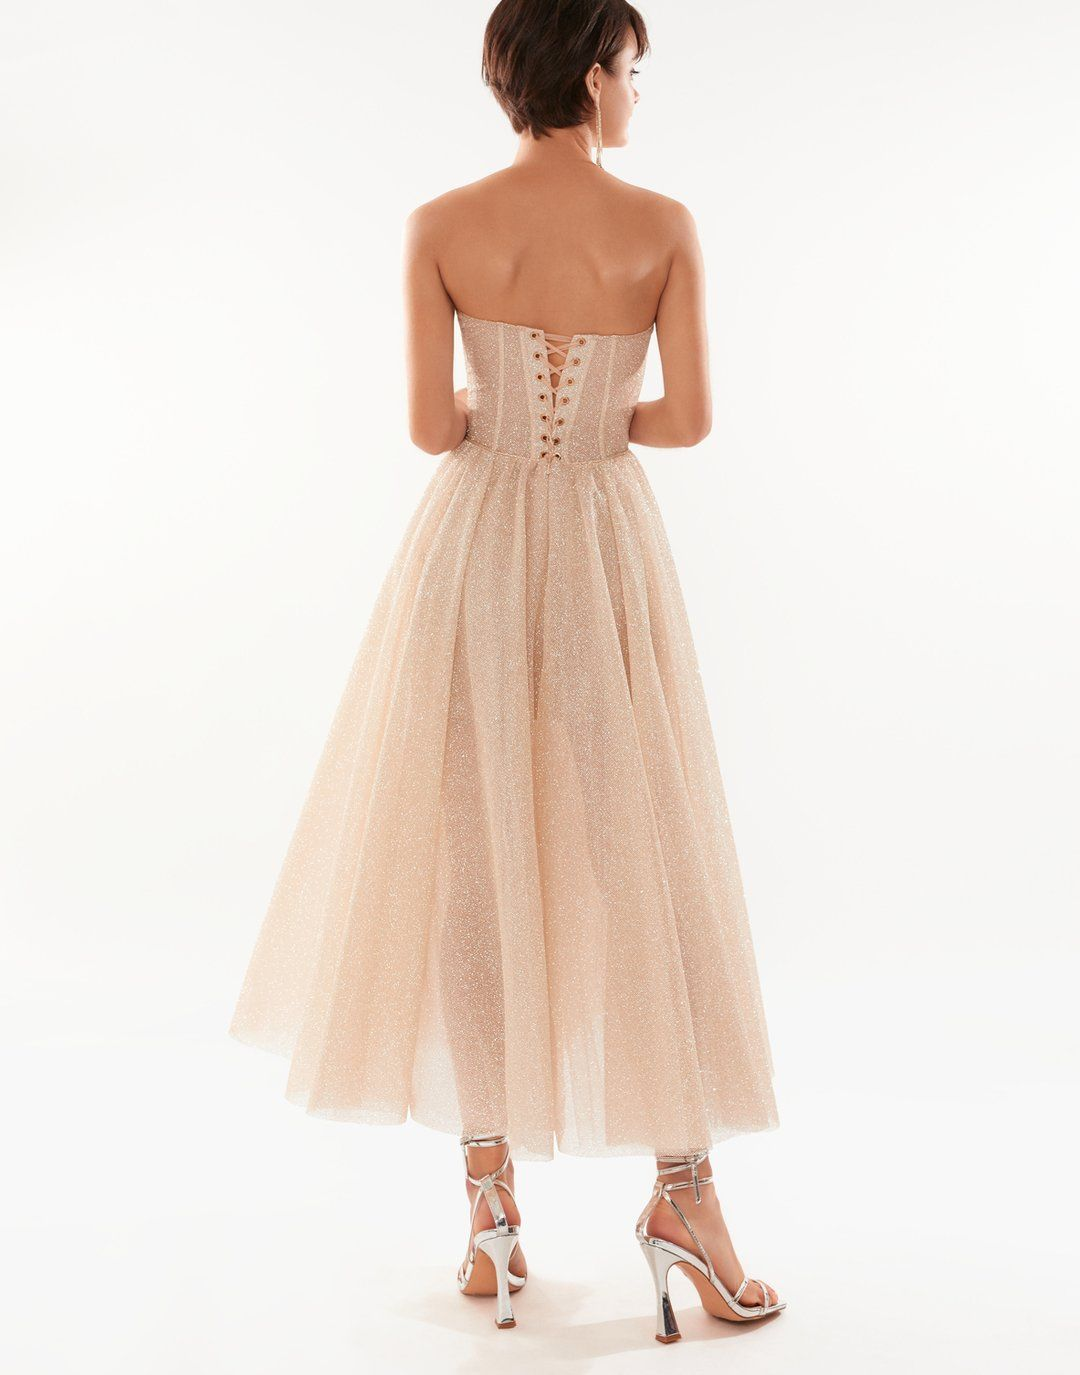 Sparkly Glittery Strapless Party Dress Features A Puffy Midi Skirt And A Lace Up Corset Bodice Details Fabr In 2021 Strapless Party Dress Dresses Elegant Dresses Long [ 1375 x 1080 Pixel ]